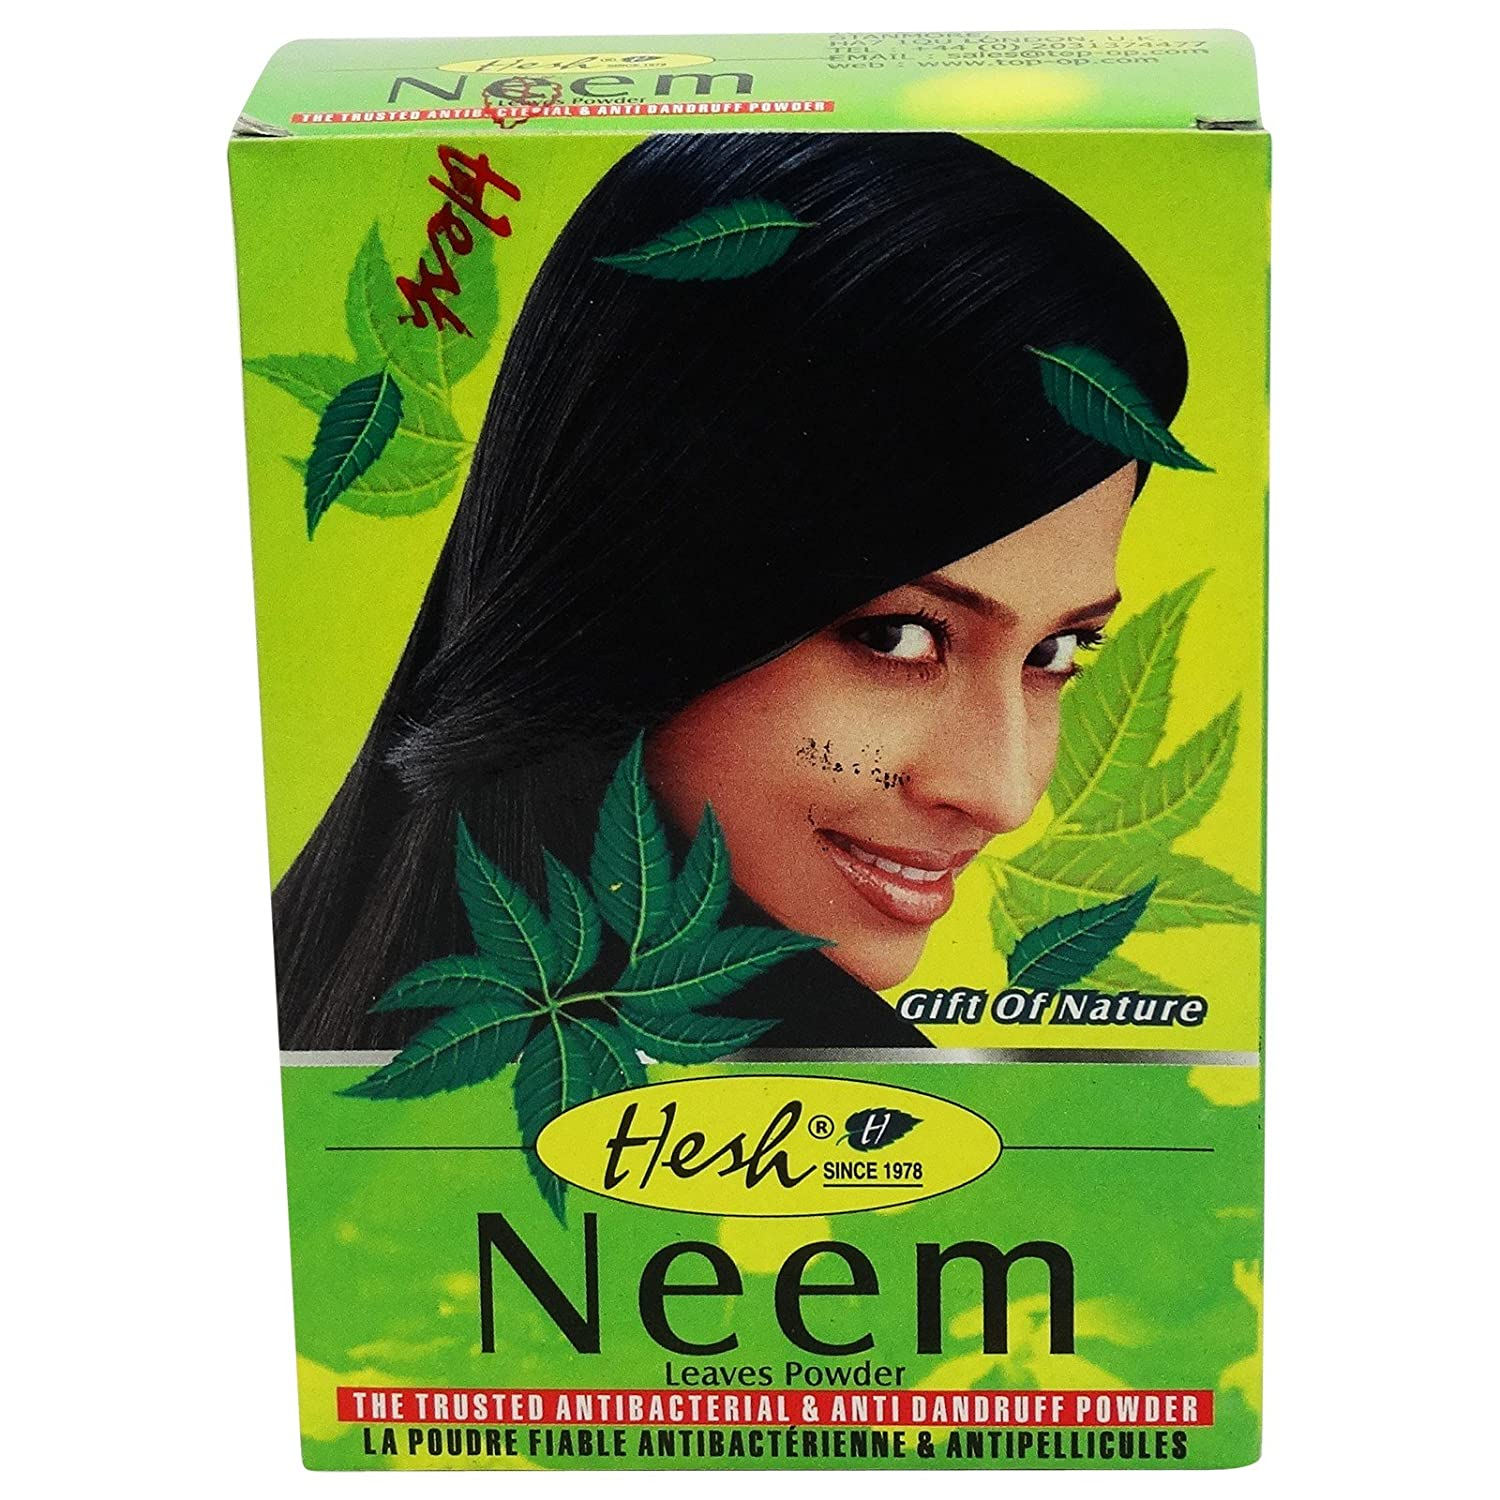 Neem Leaves Powder - Anti-bacterial Hesh